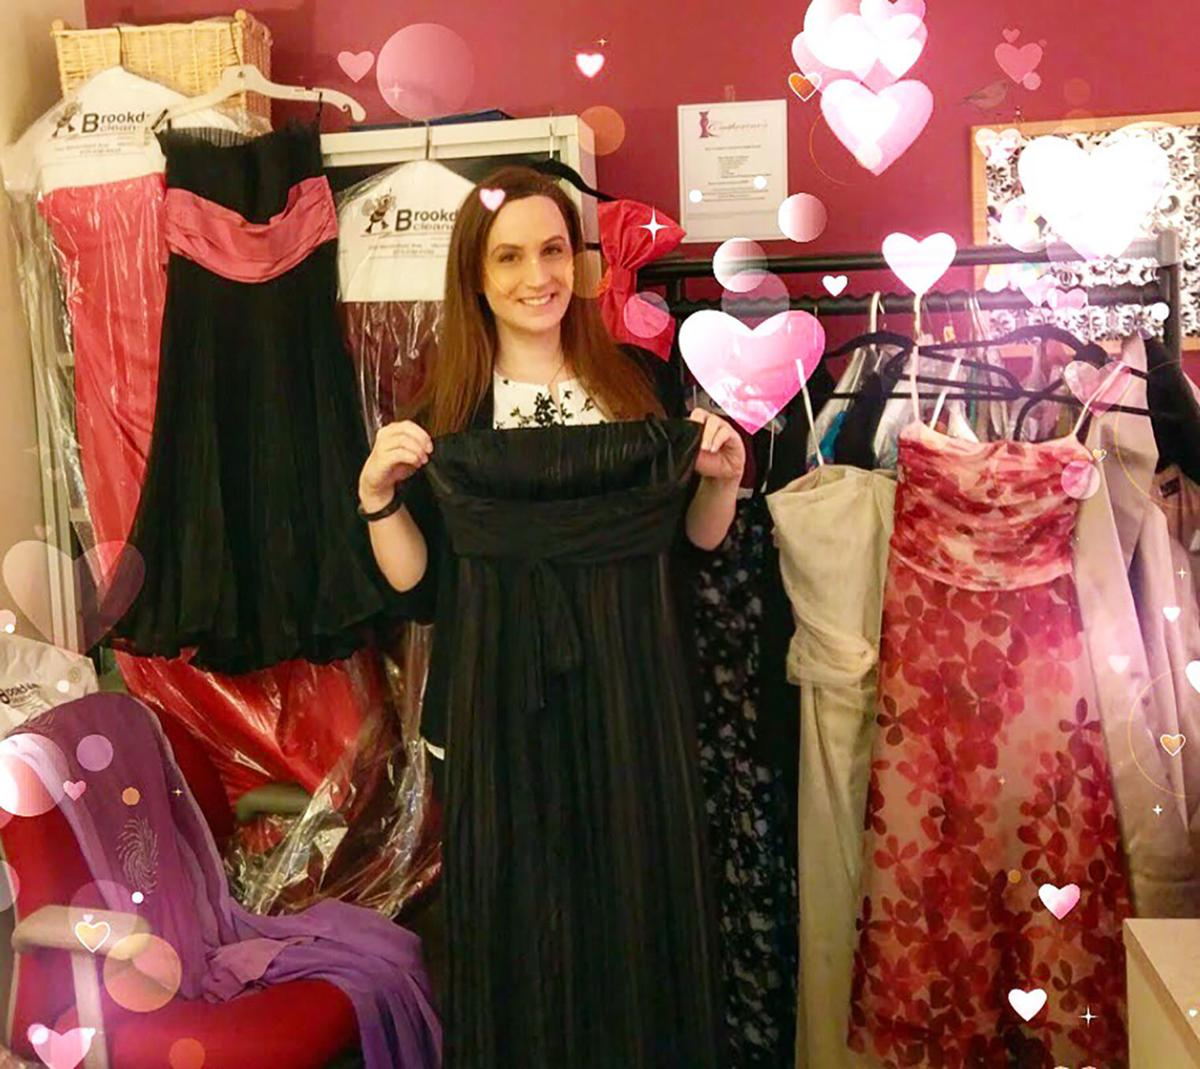 Essex County College collecting prom dresses | The Progress News ...